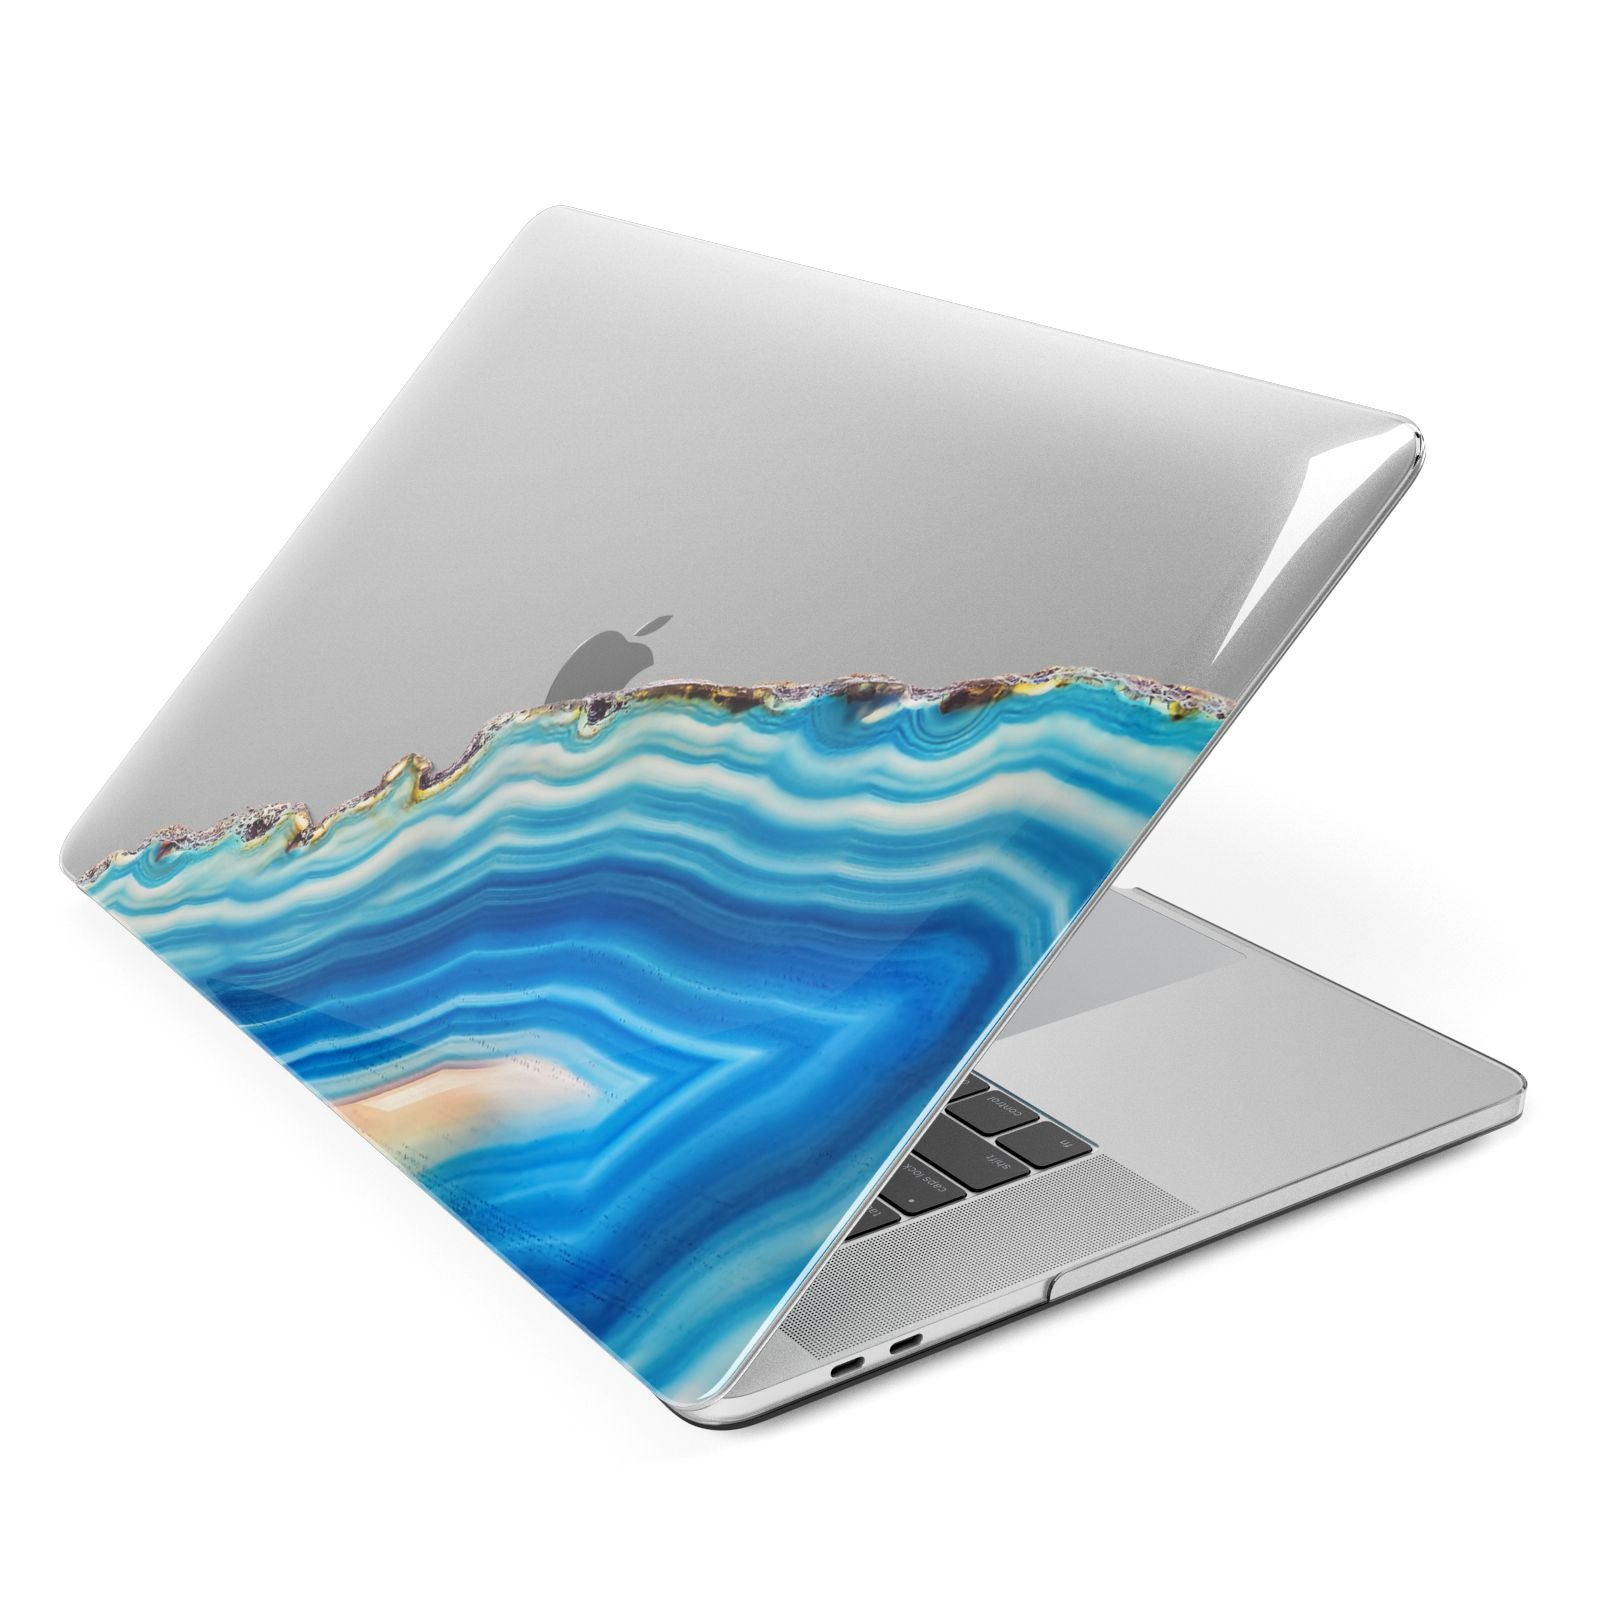 Agate Pale Blue and Bright Blue Apple MacBook Case Side View